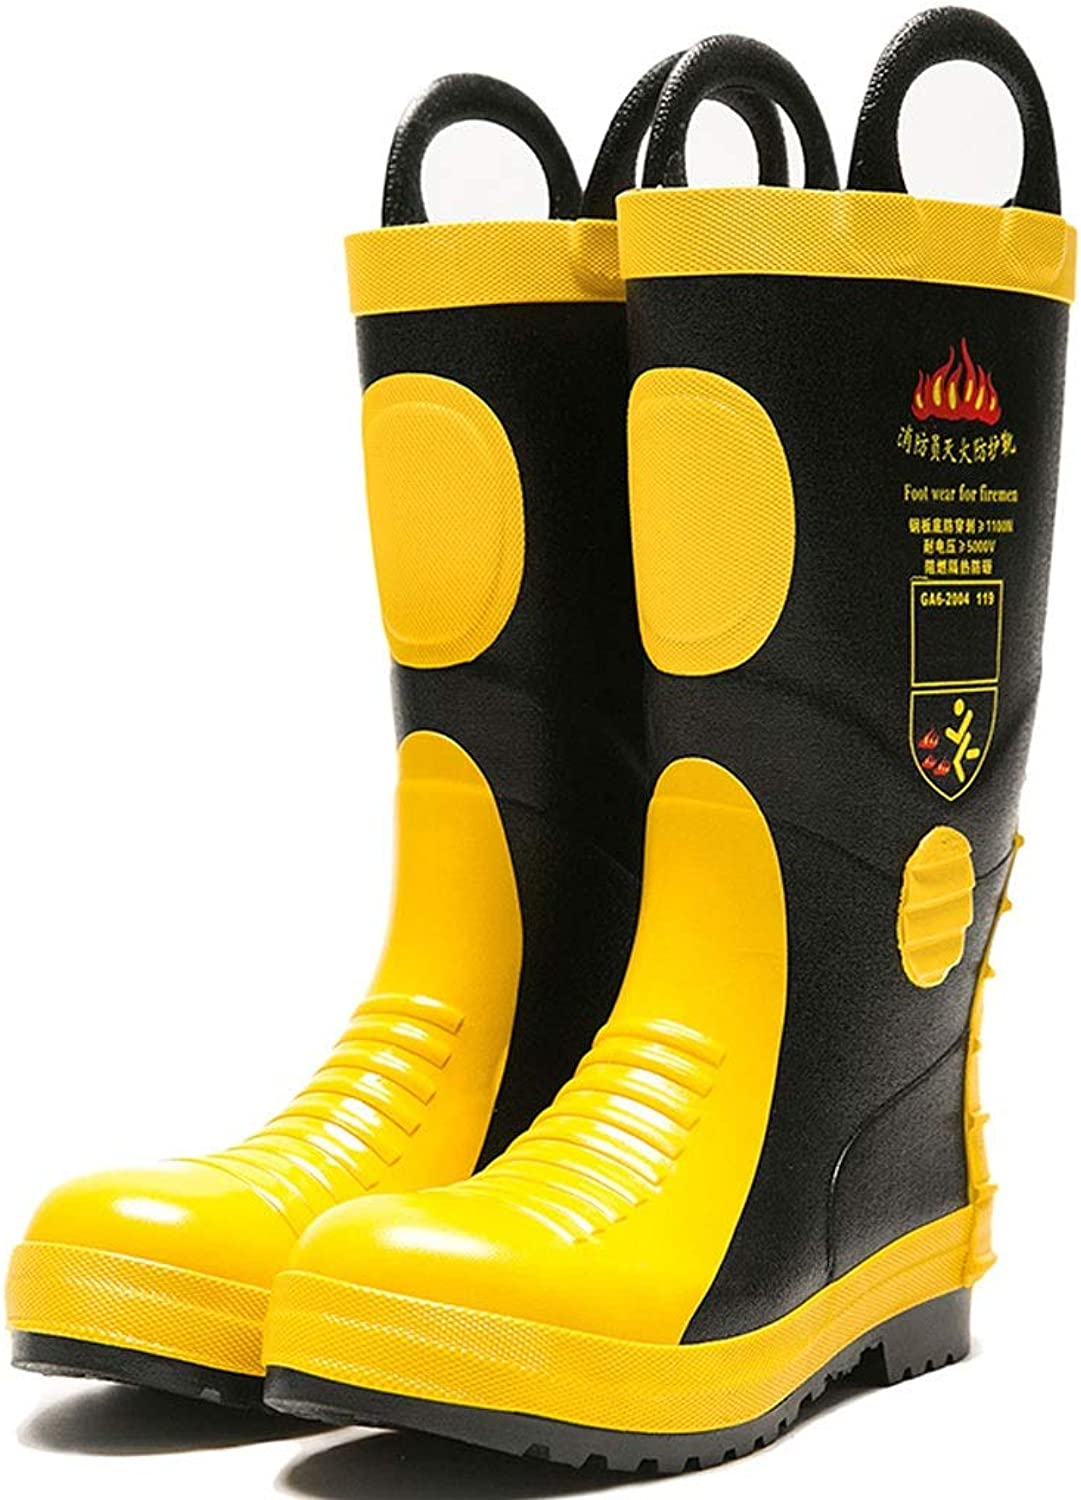 FRF Rain Boots- Men's High-Tube Waterproof and Anti-Puncture Rubber Rain Boots, Outdoor Steel Plate Fire Rain Boots